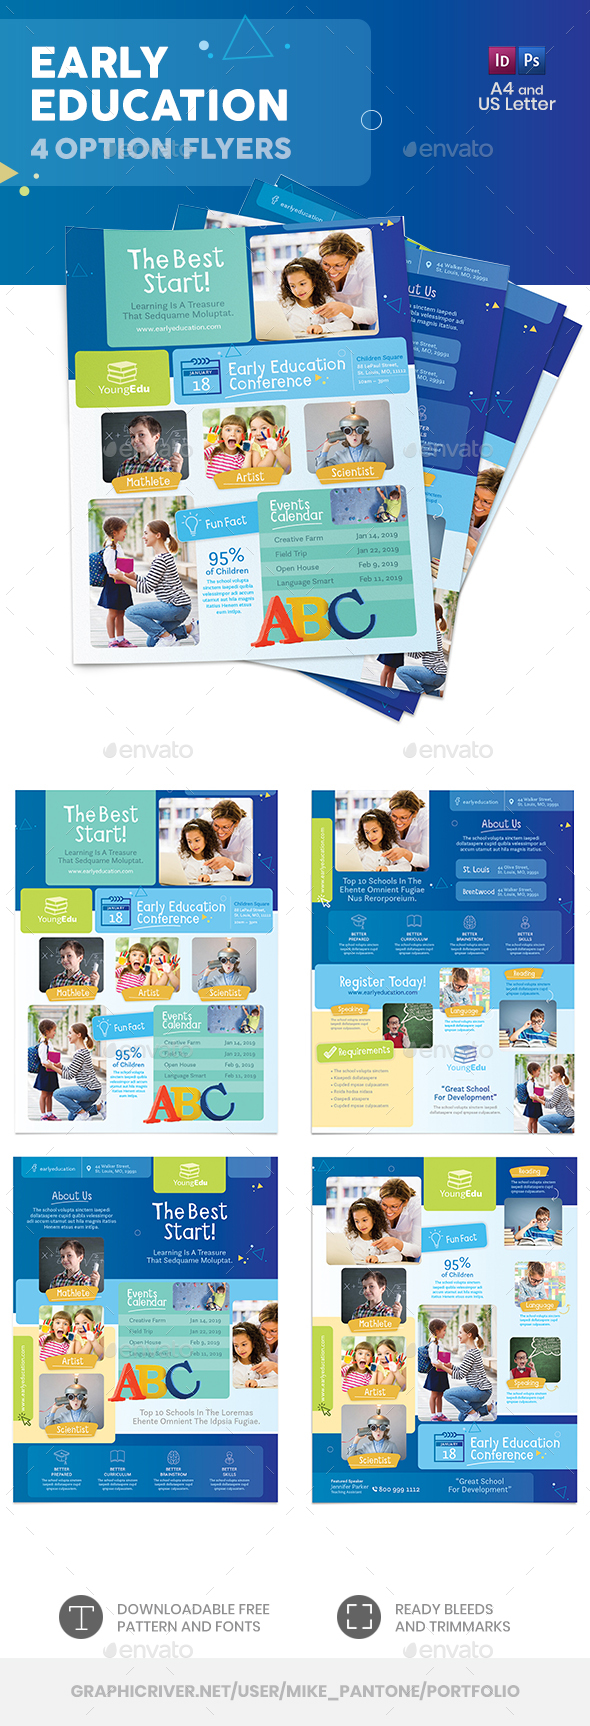 Early Education Flyers – 4 Options